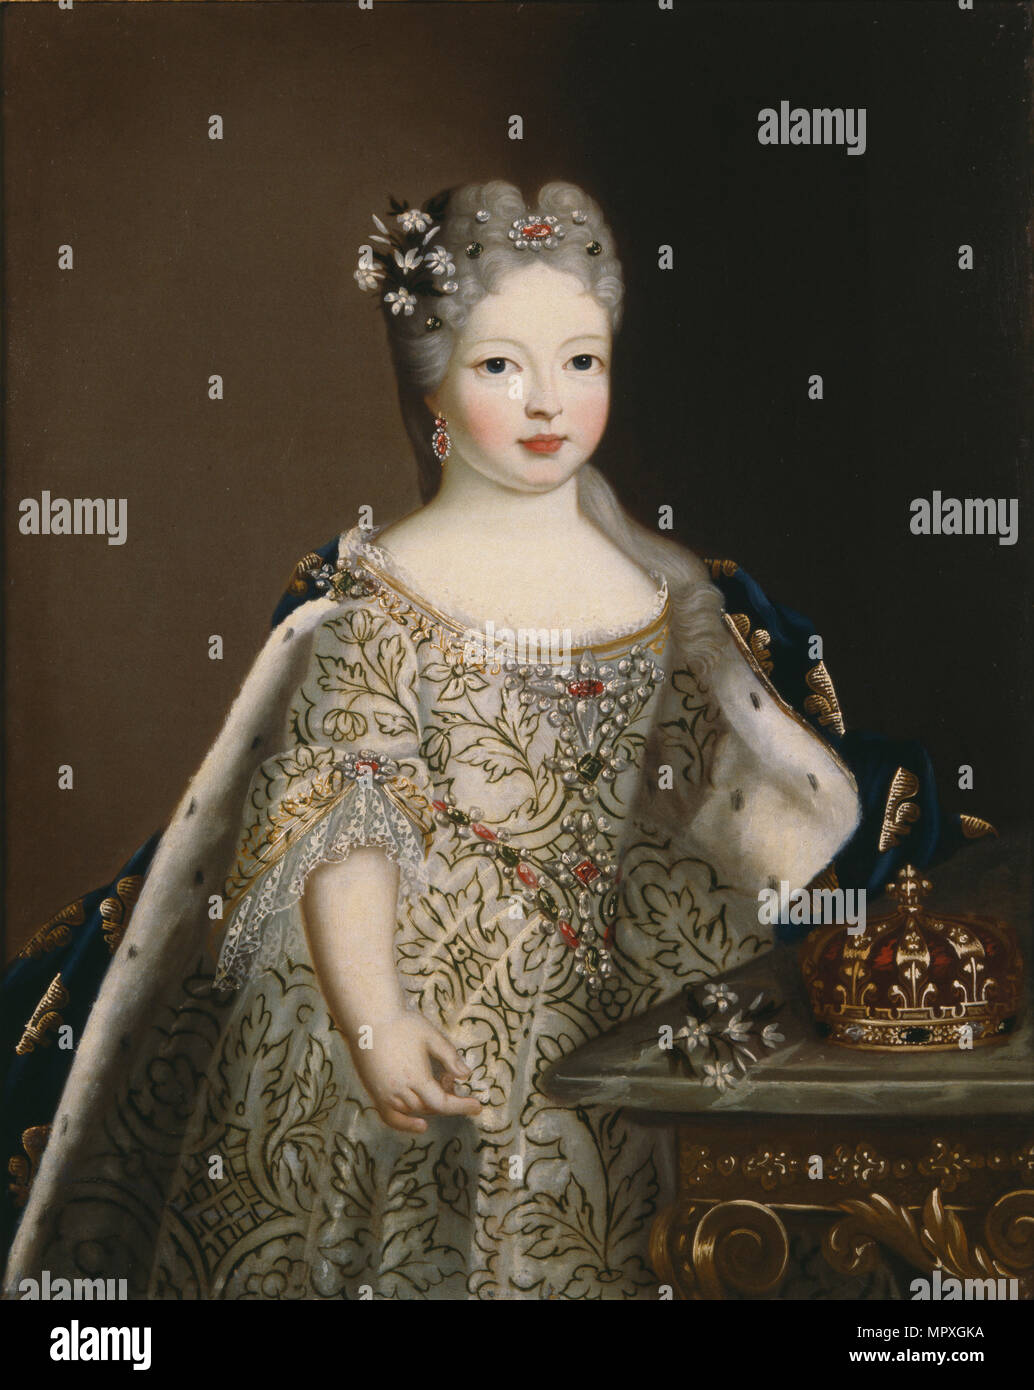 Portrait of Infanta Mariana Victoria of Spain (1718-1781), Queen of Portugal. - Stock Image